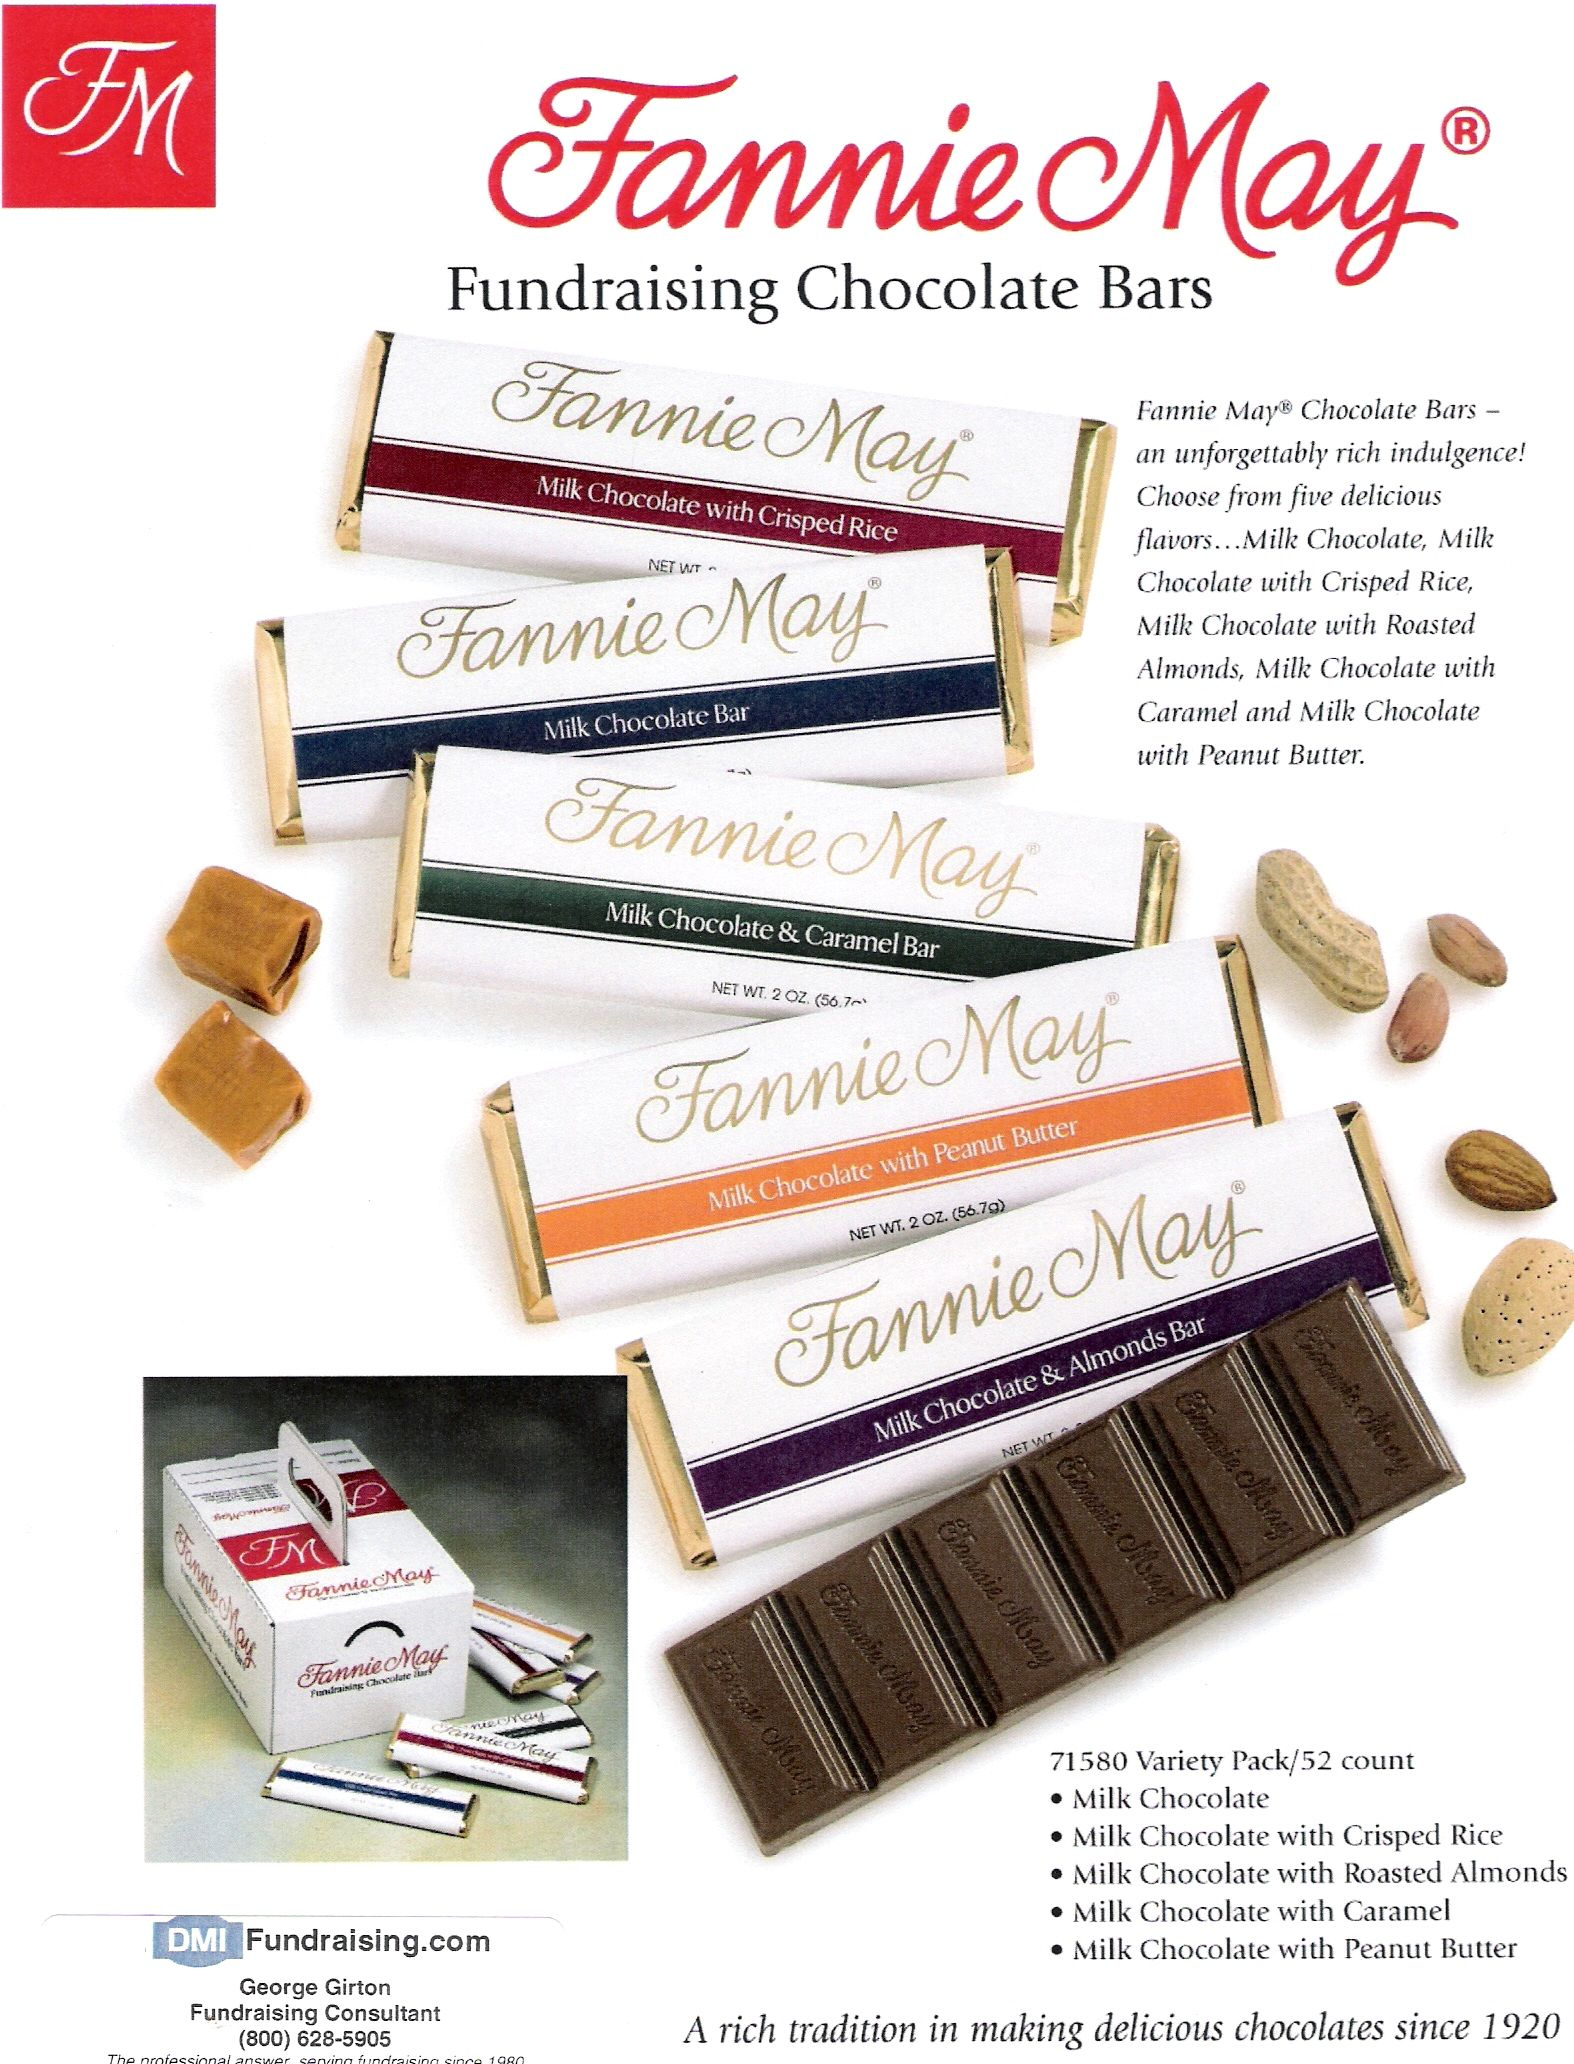 photo about Fannie May Coupons Printable identified as Fannie Could possibly fundraiser Fannie Might Chocolates Cost-free